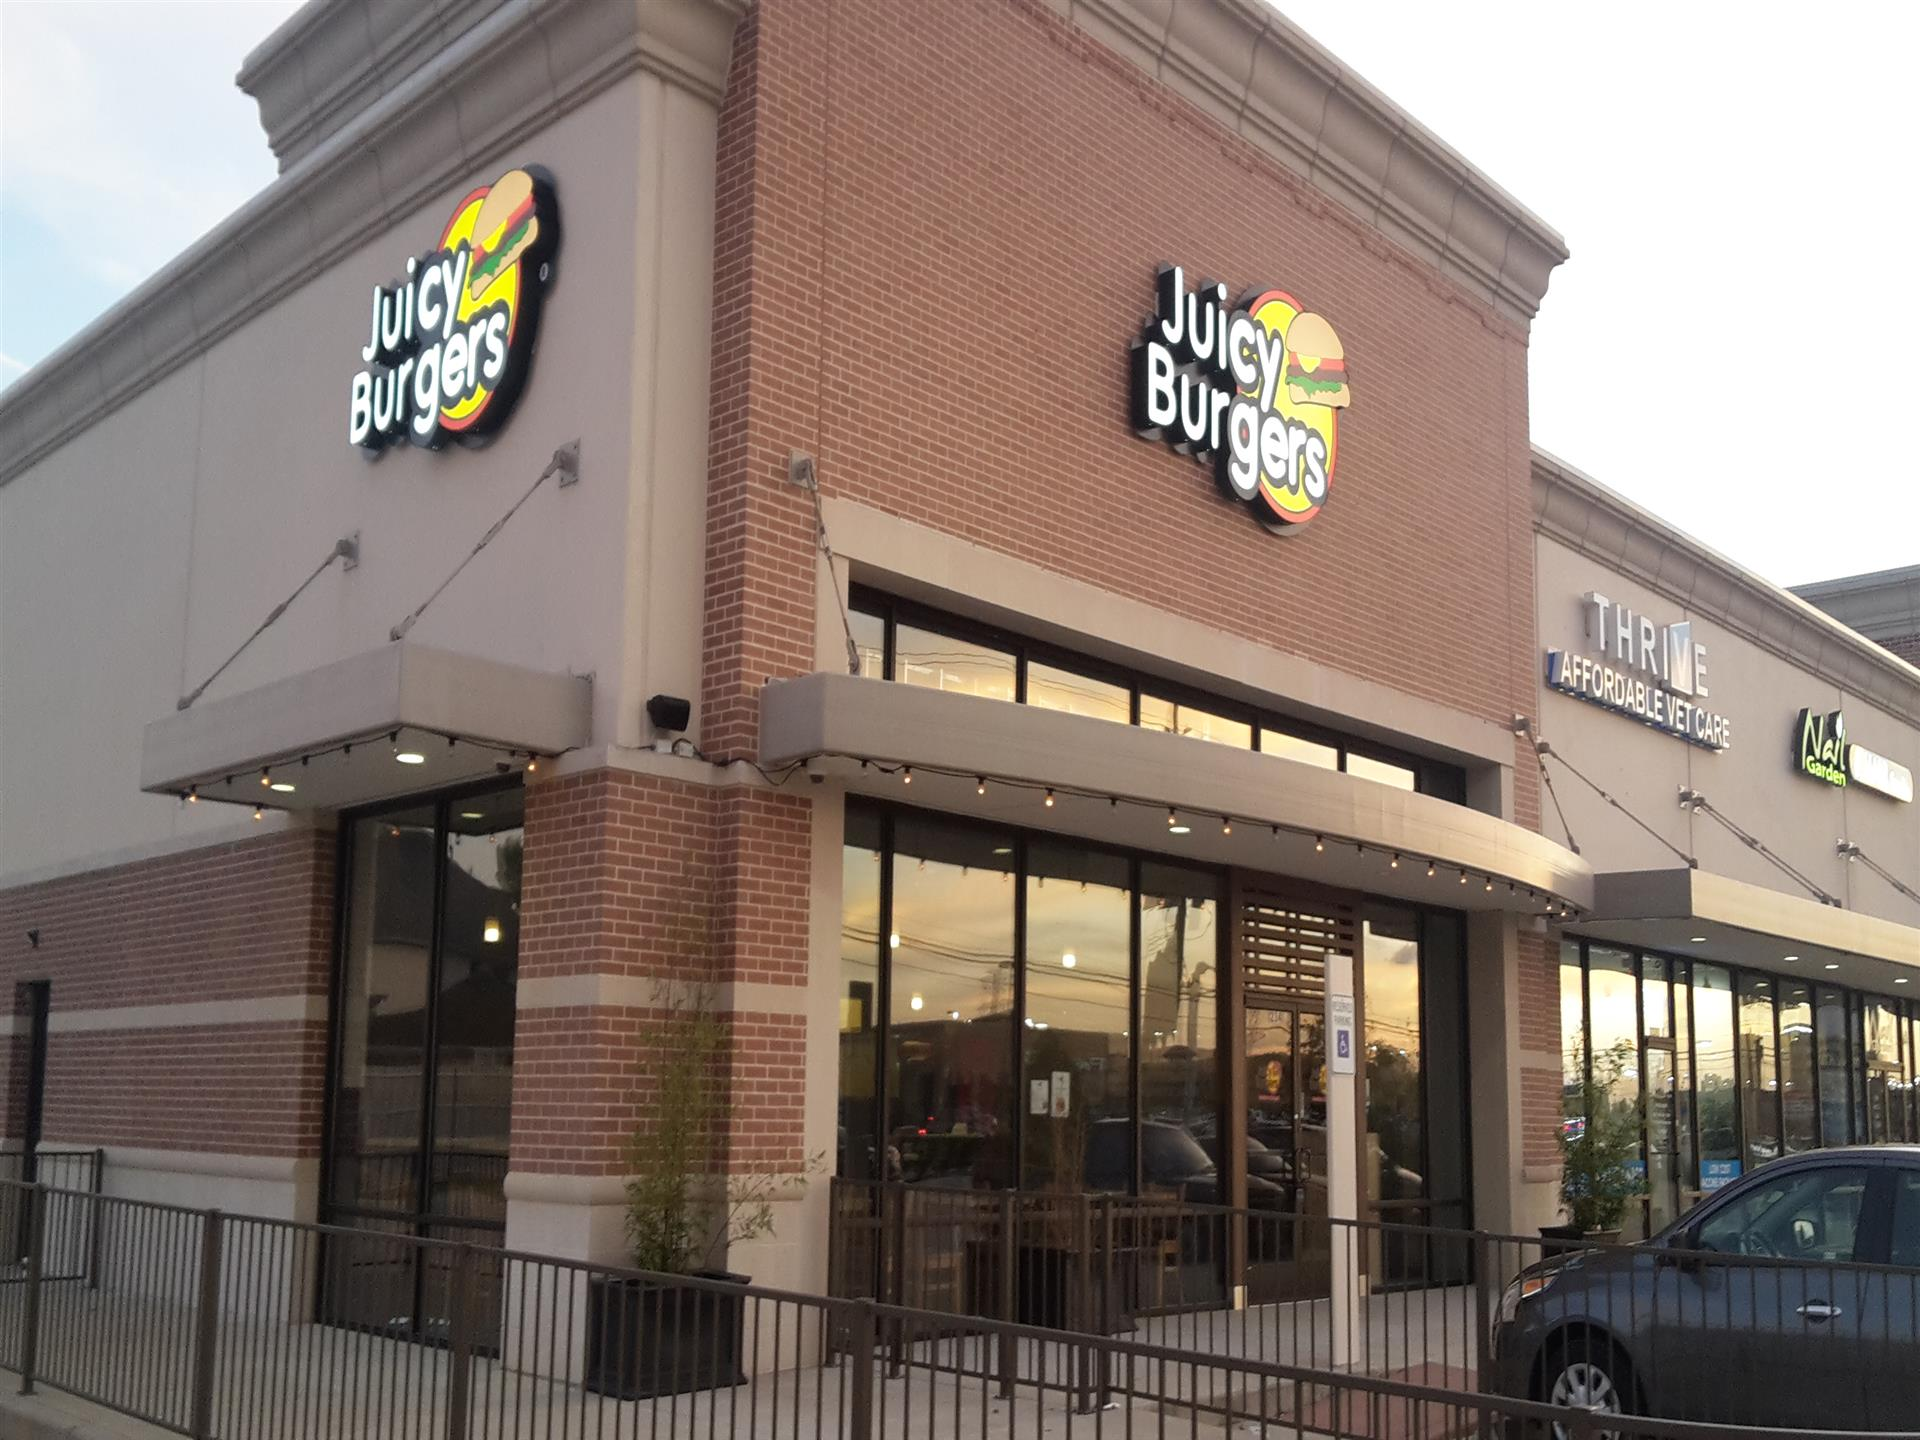 Juicy Burgers Exterior showing front entrance and adjacent stores